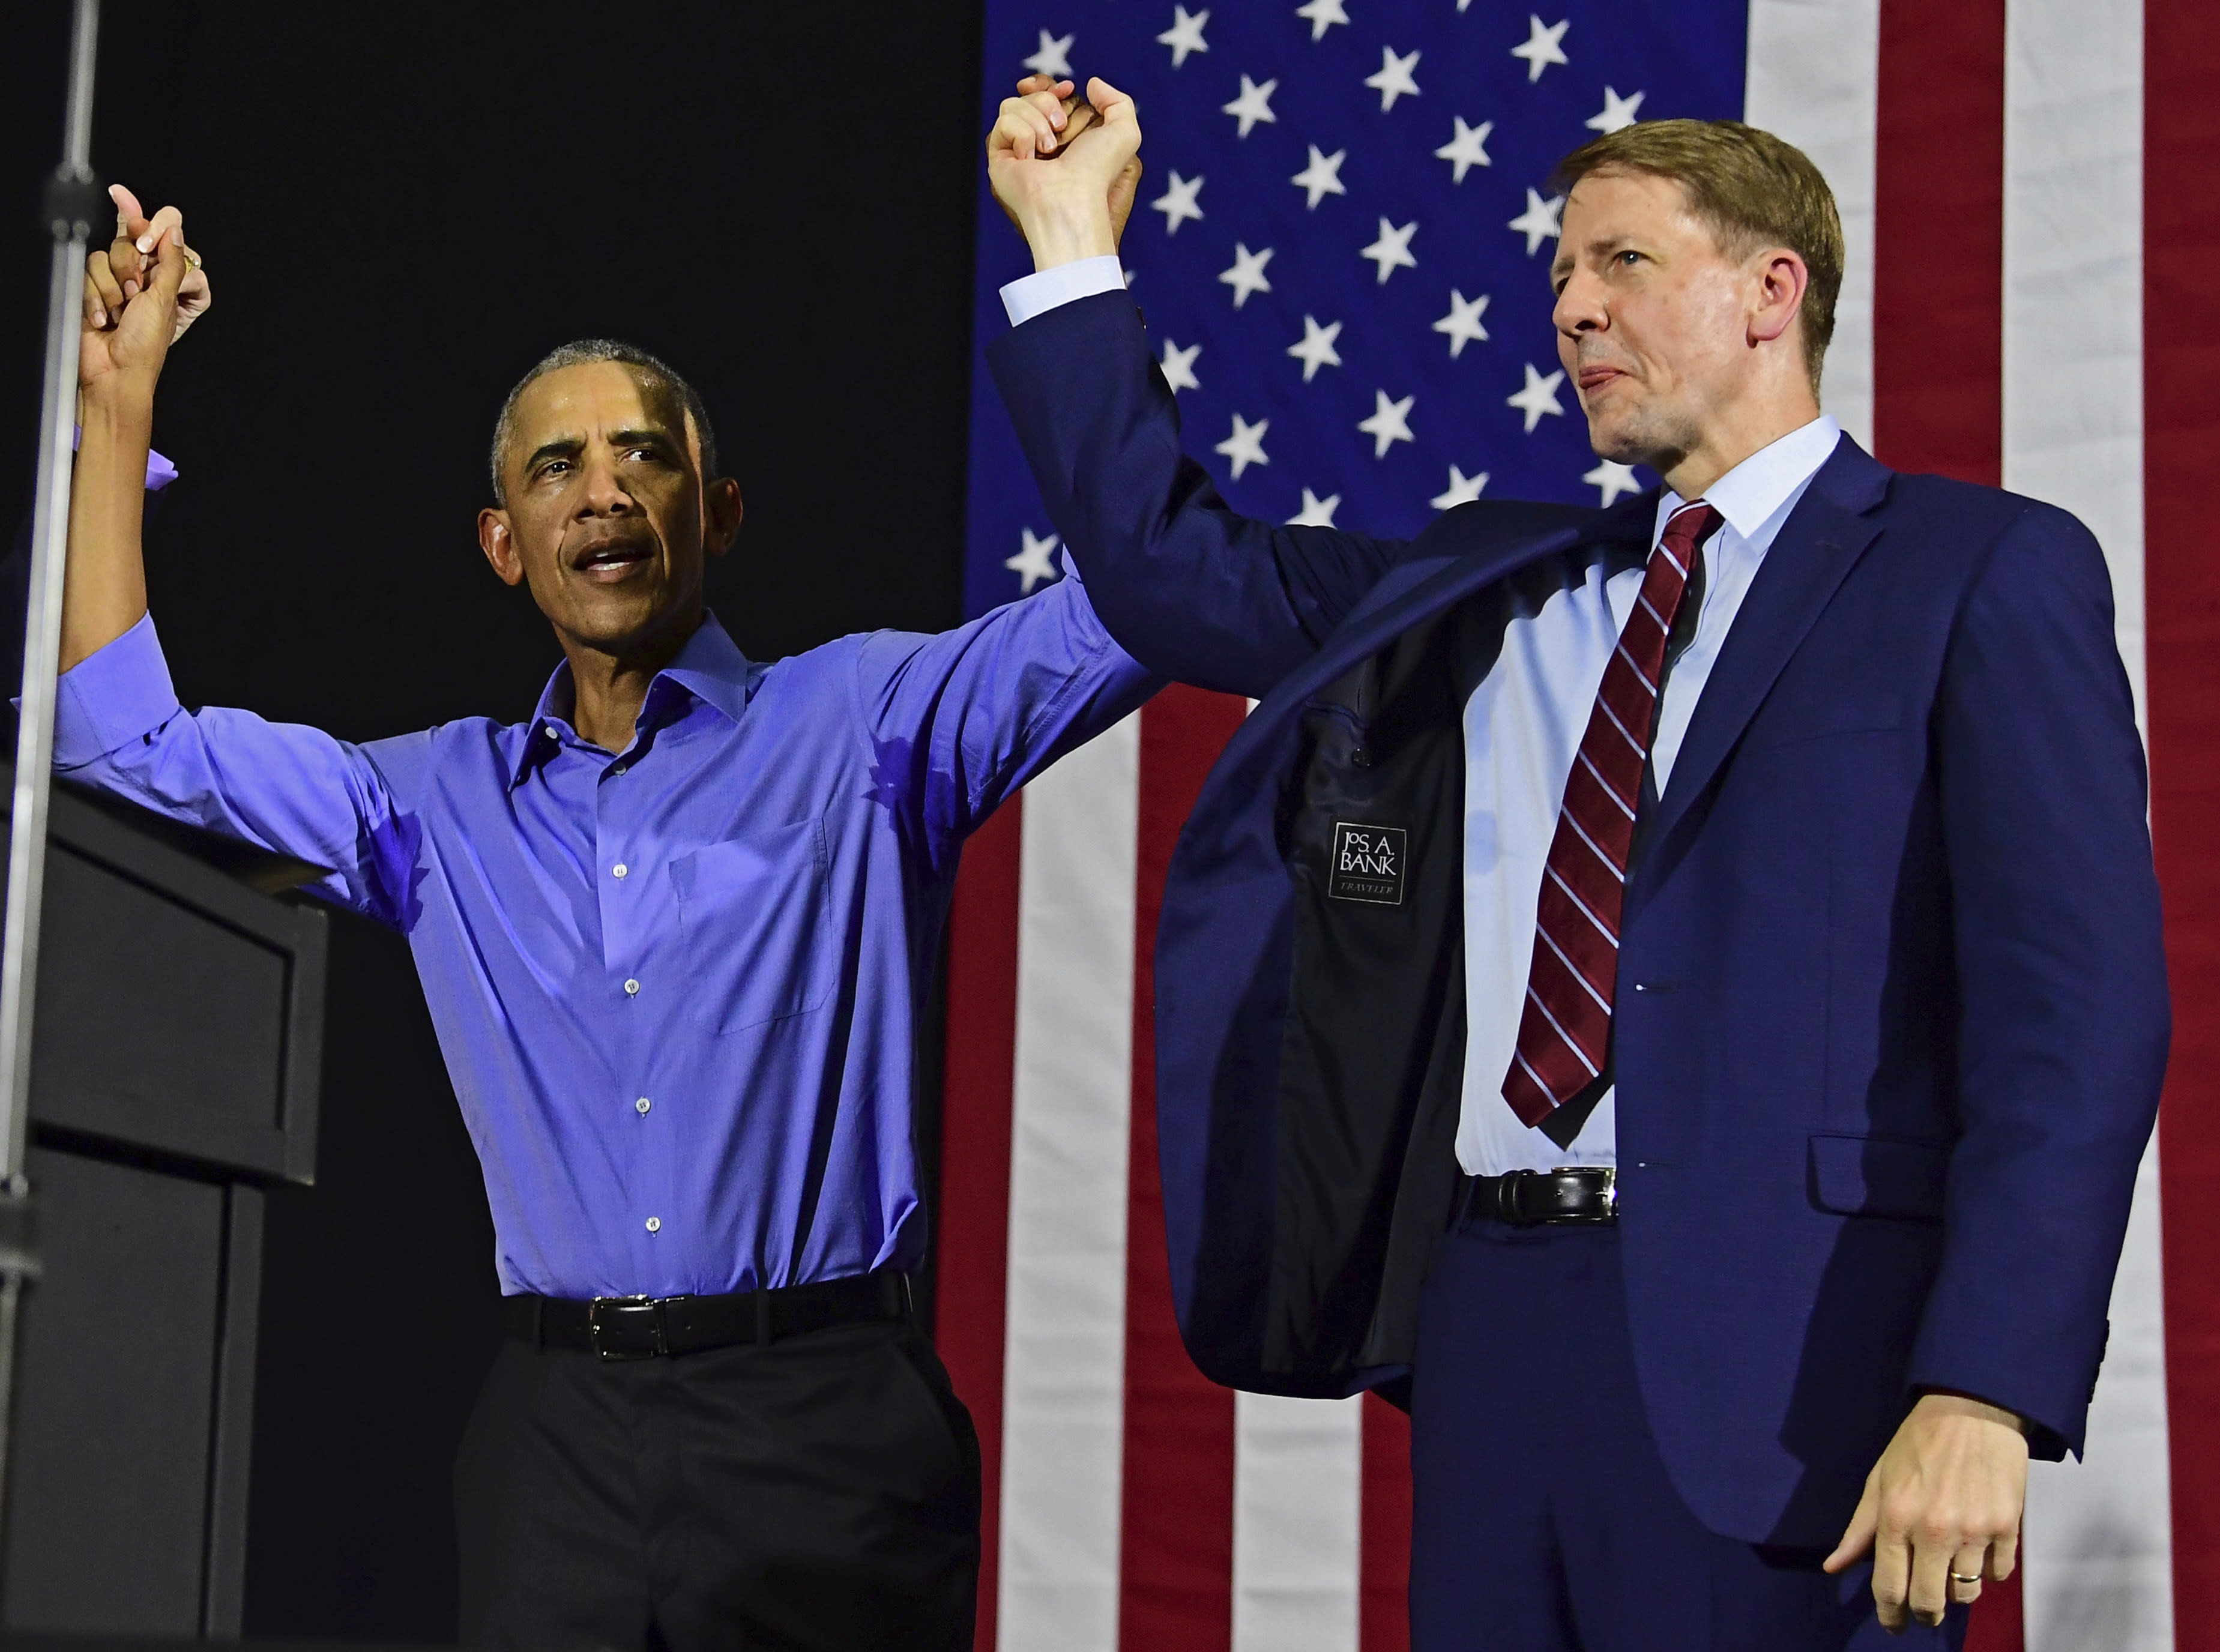 Former President Barack Obama, left, and Democratic gubernatorial candidate Richard Cordray at a campaign rally, Thursday, Sept. 13, 2018, in Cleveland. Former President Barack Obama was in closely divided Ohio to campaign for Democratic gubernatorial candidate Richard Cordray, running mate Betty Sutton, U.S. Sen. Sherrod Brown and the party's statewide slate. (AP Photo/David Dermer)